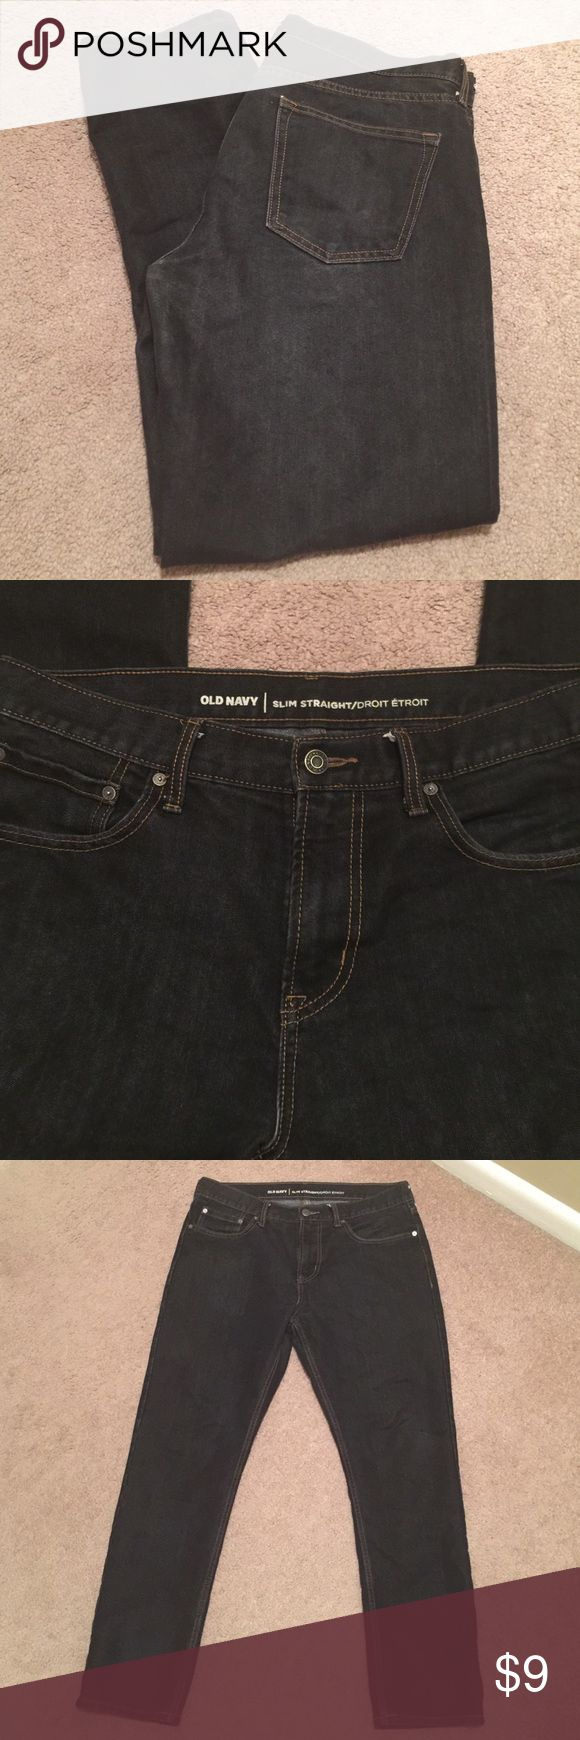 Men's faded black Old Navy jeans 👖 Gently worn, great condition!! Washed a few times. Size 34x30. Slim straight jeans. Old Navy Jeans Slim Straight